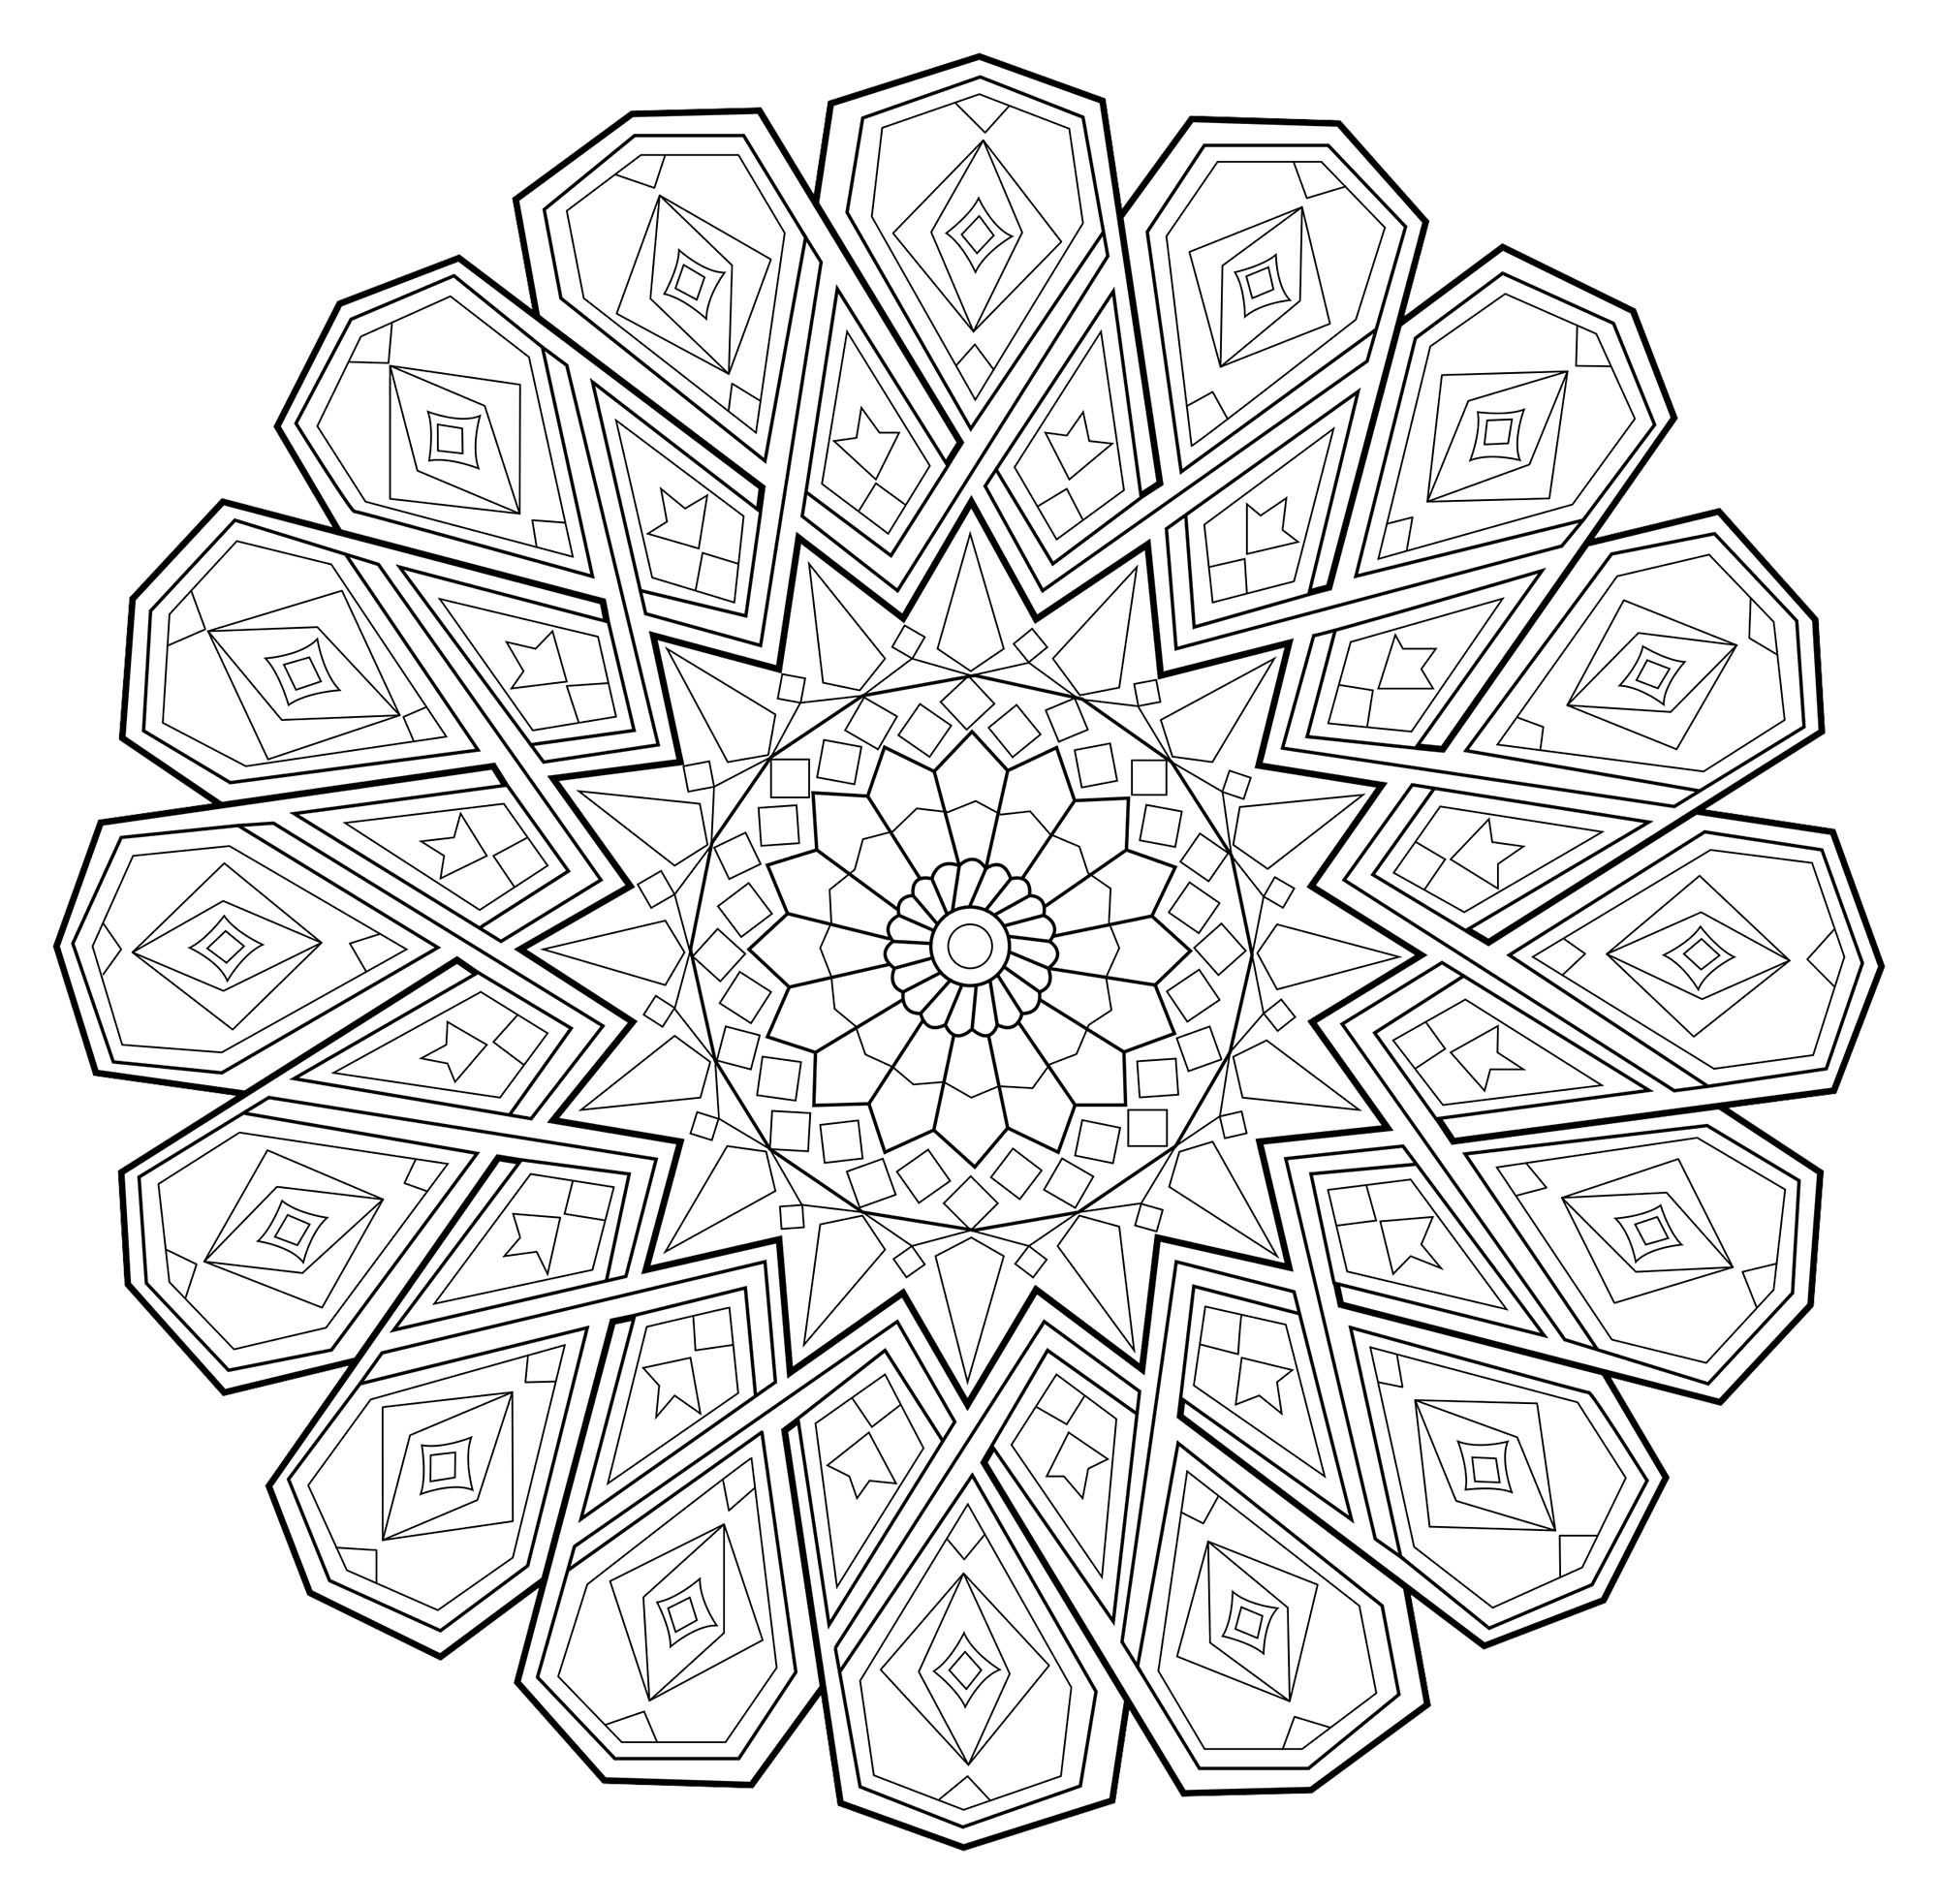 Mandala Anti Stress1 Zen Anti Stress Mandala 1 From The Gallery Mandalas Artist Celine Just Color Discover All Our Printable Coloring Pages F Free